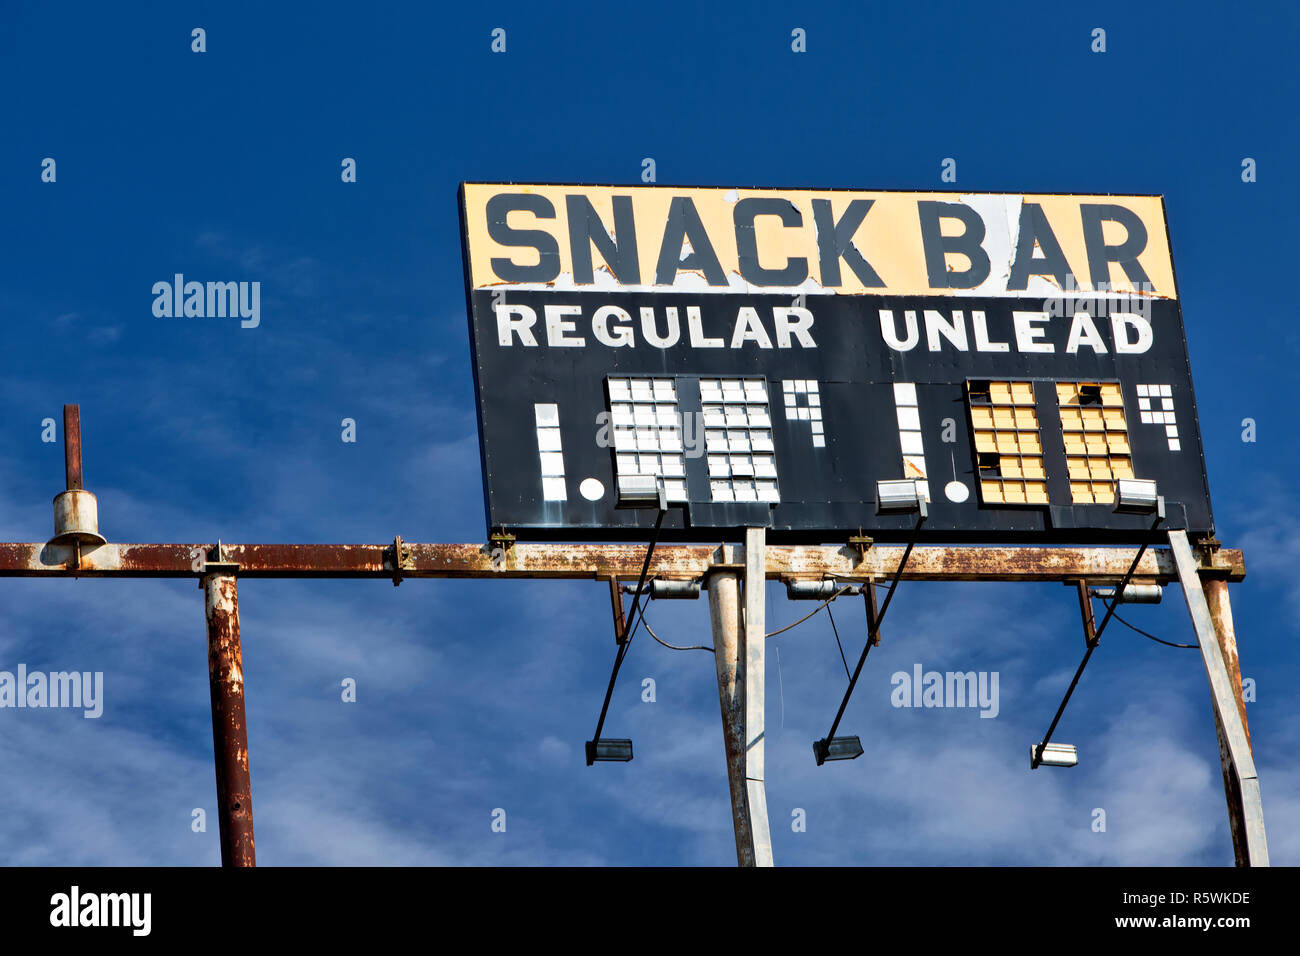 Elevated Vintage Gas Station Sign 'Snack Bar - Regular - Unlead' gasoline, against a scattered blue sky. - Stock Image